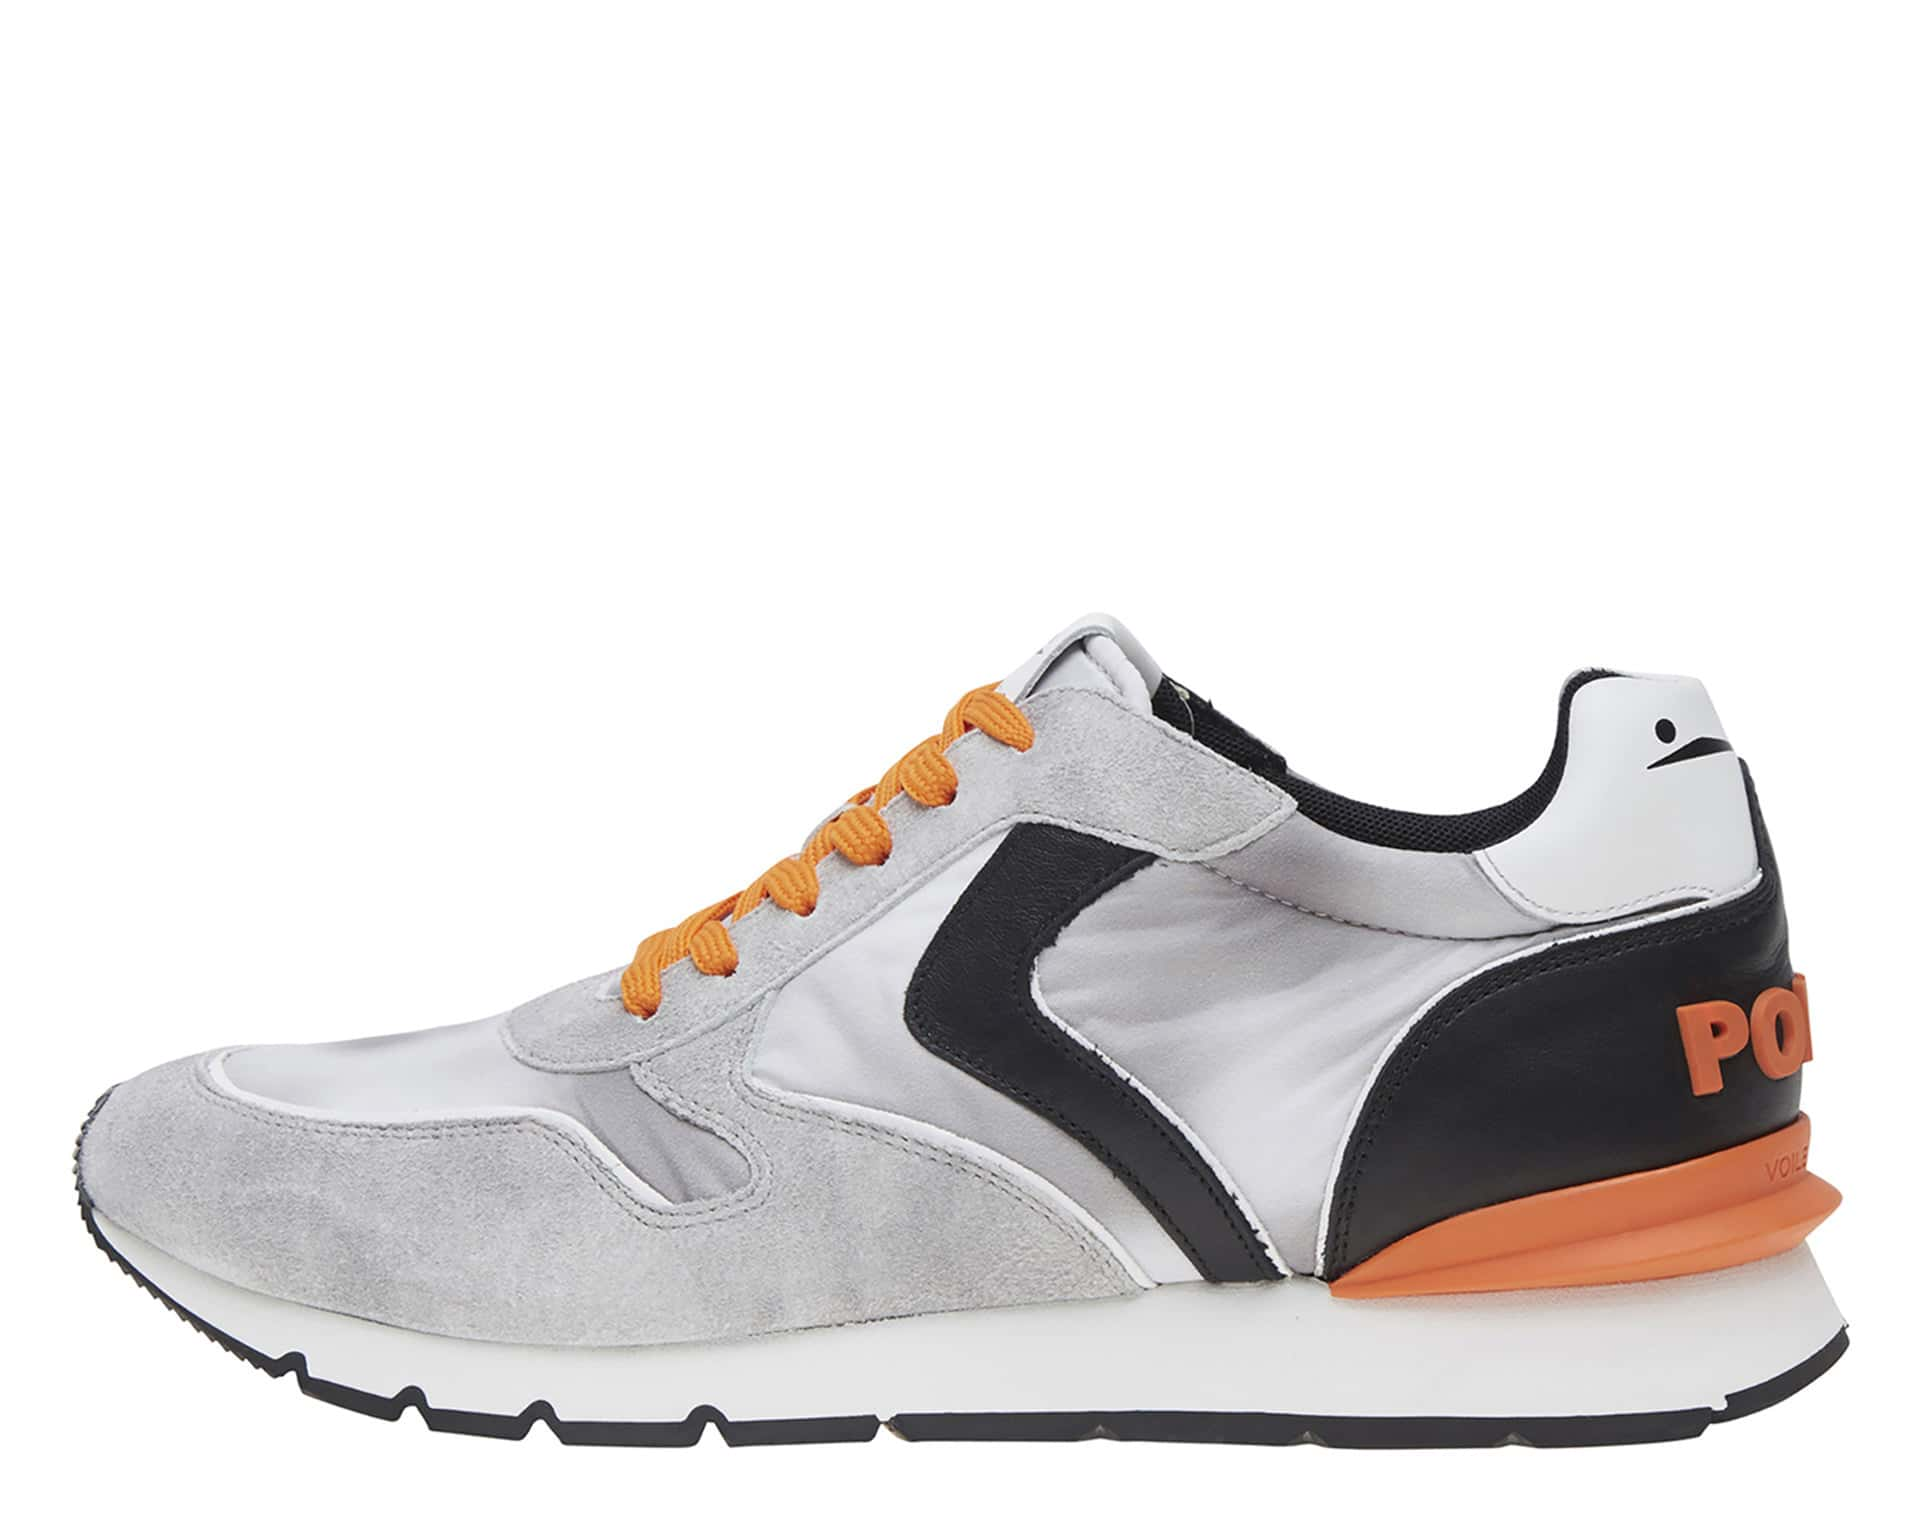 LIAM RACE POP - SNEAKERS IN PELLE E NYLON - ICE/GRIGIO/ARANCIO